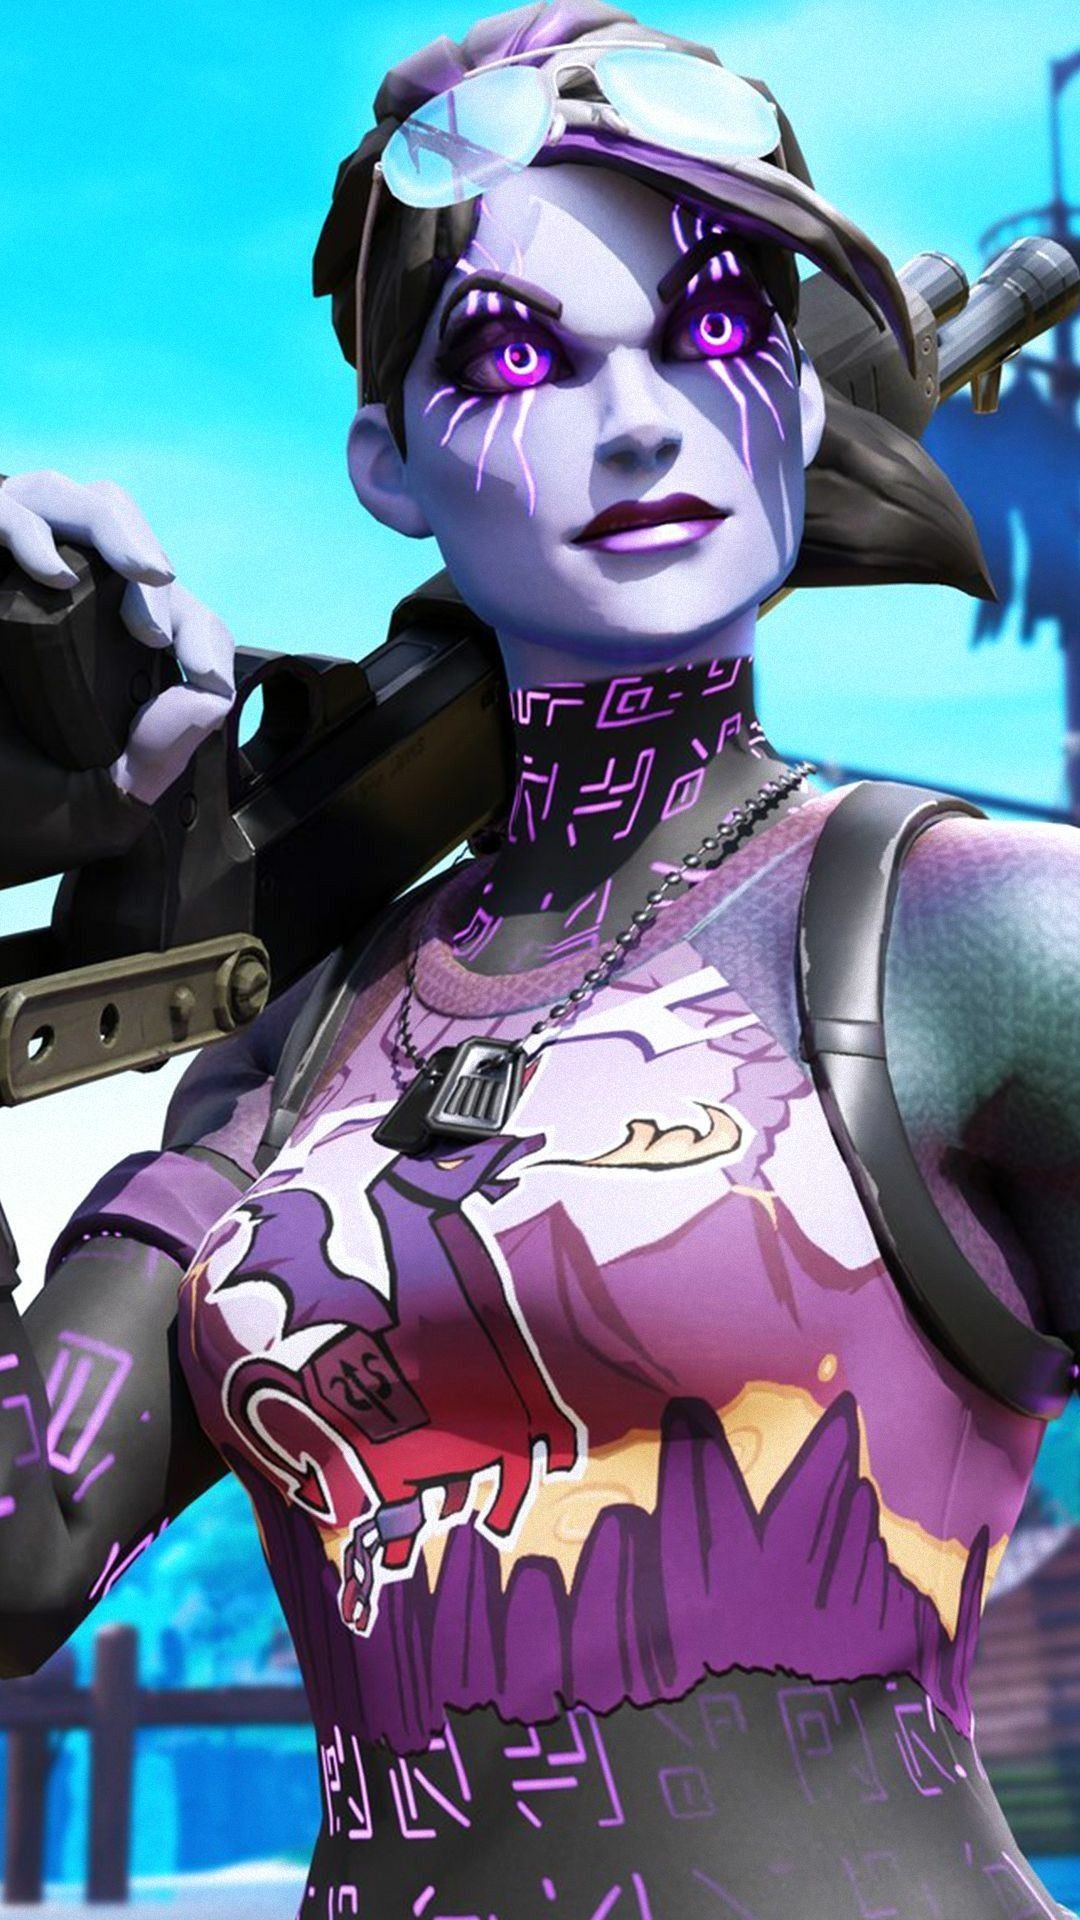 Dark Bomber Fortnite Skin Wallpaper Fortnite Fazesway